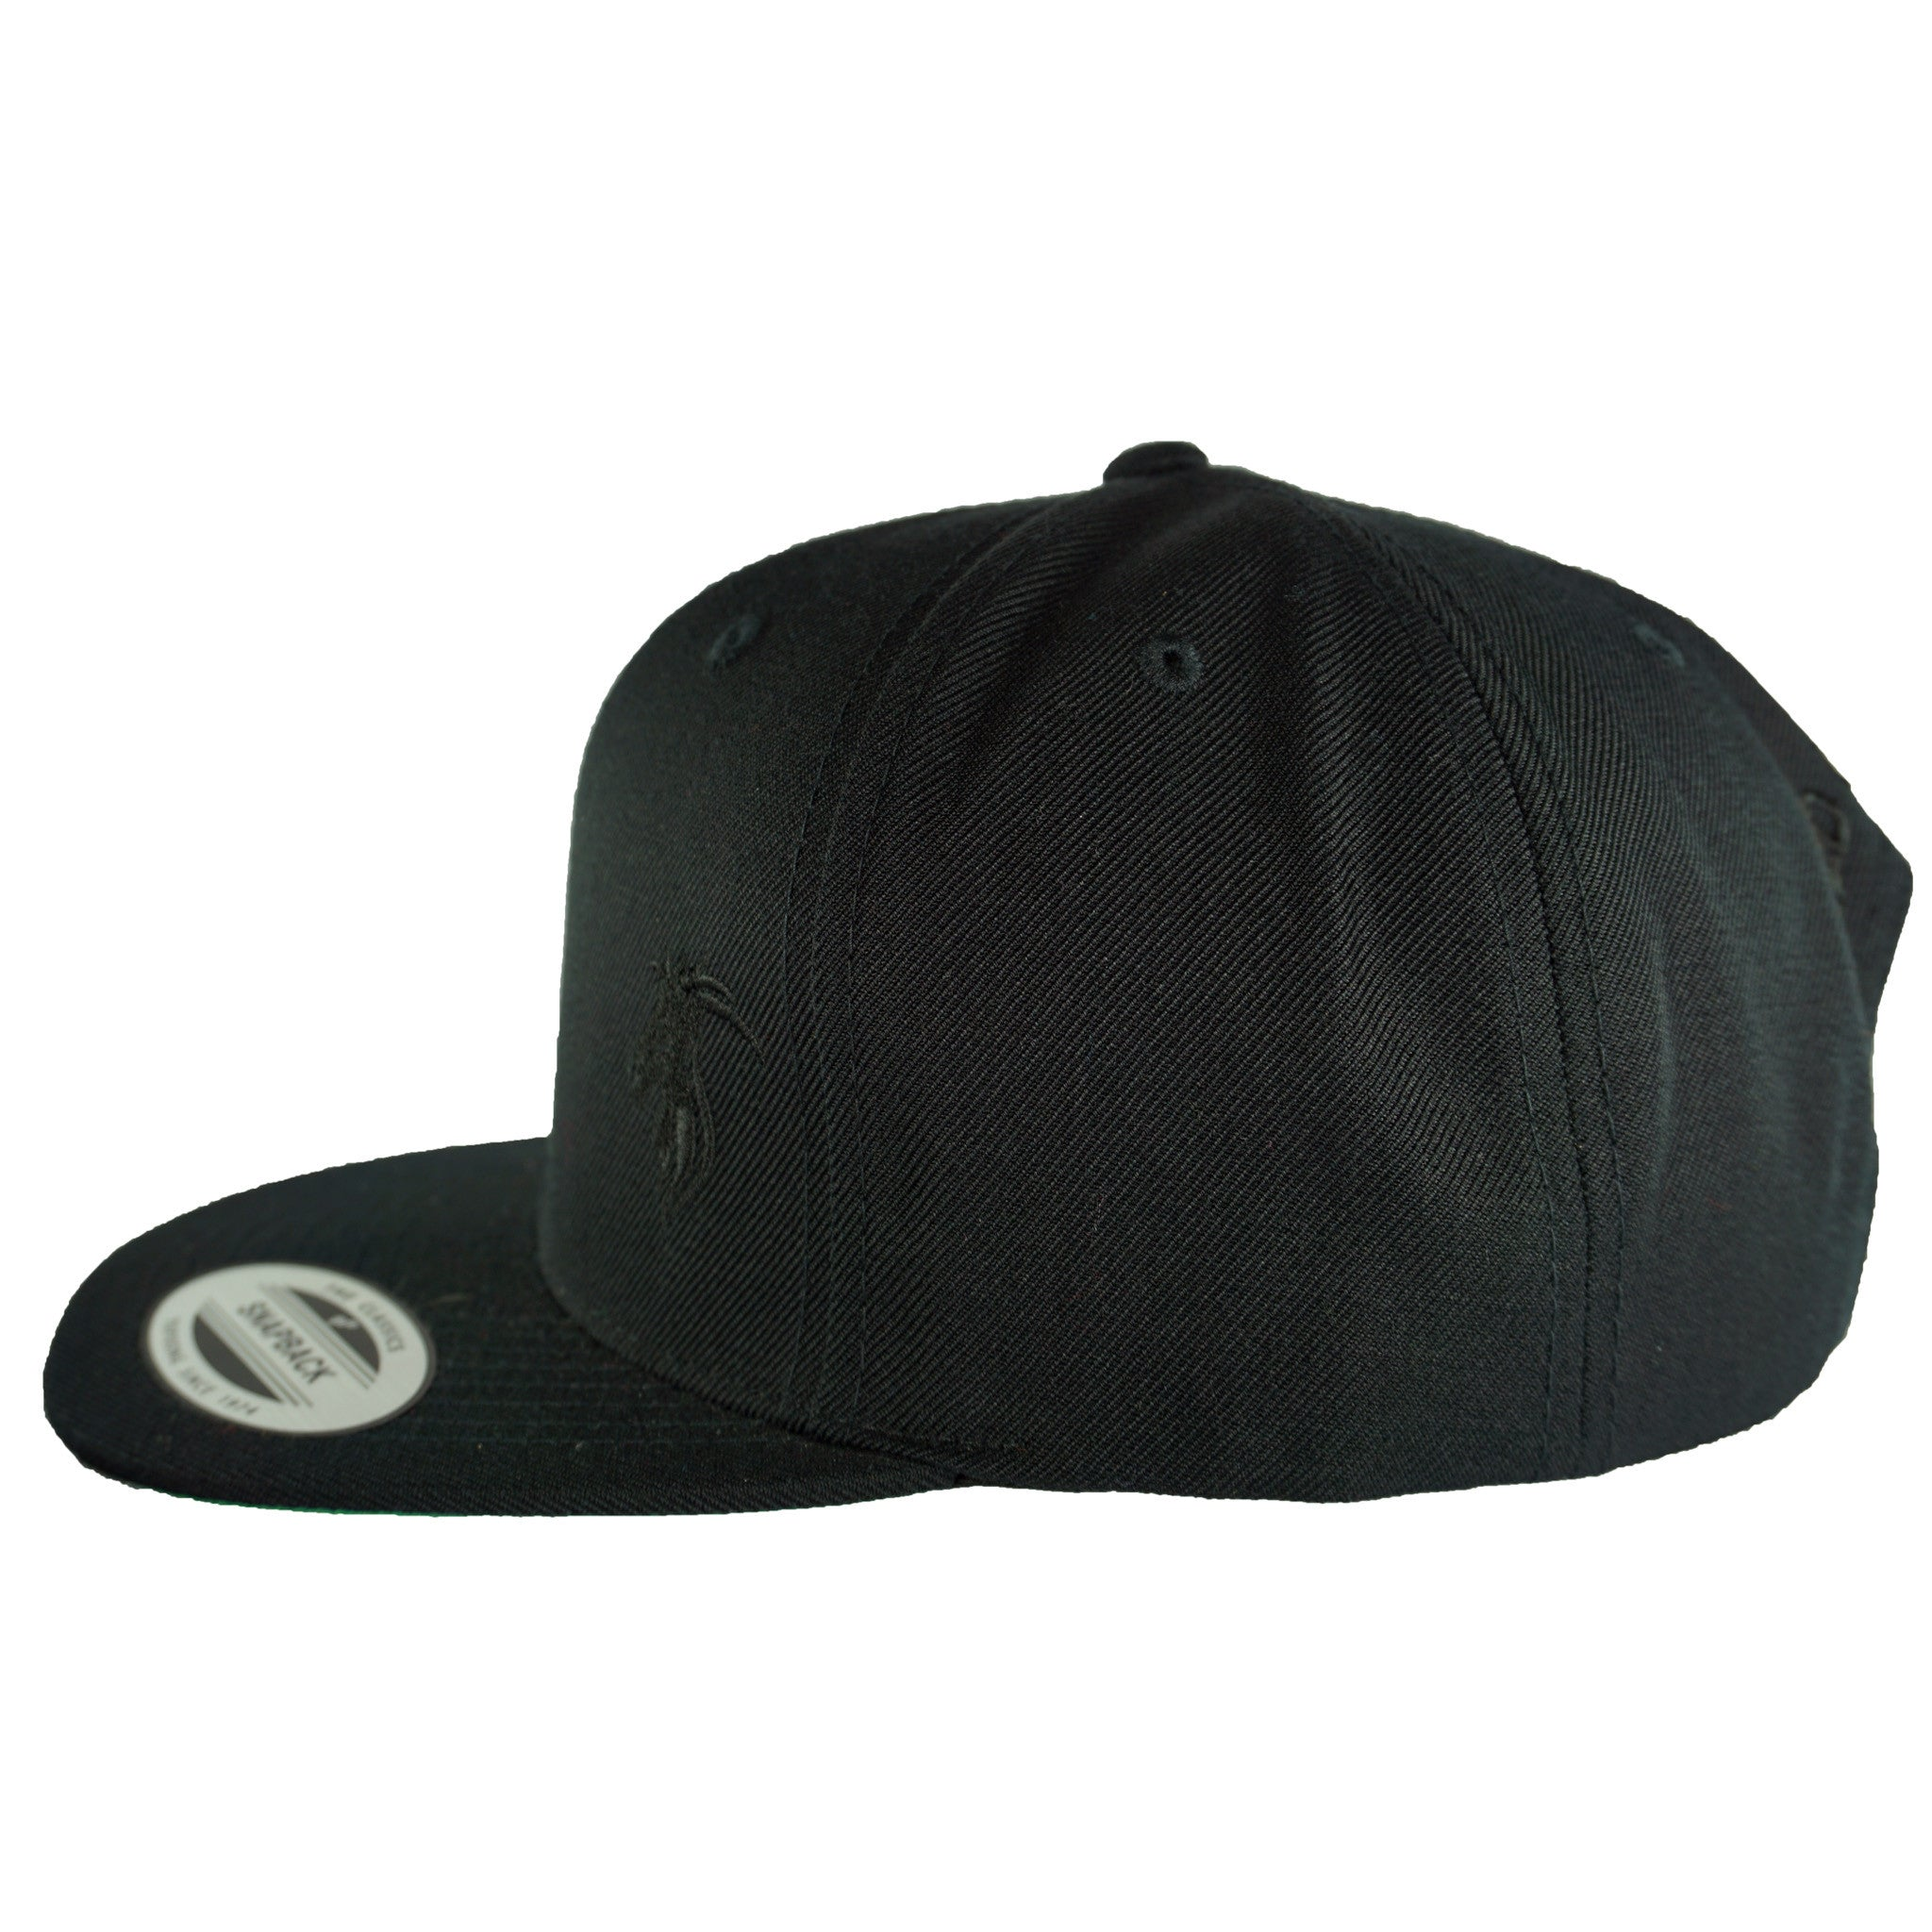 Black Snapback with Black logo